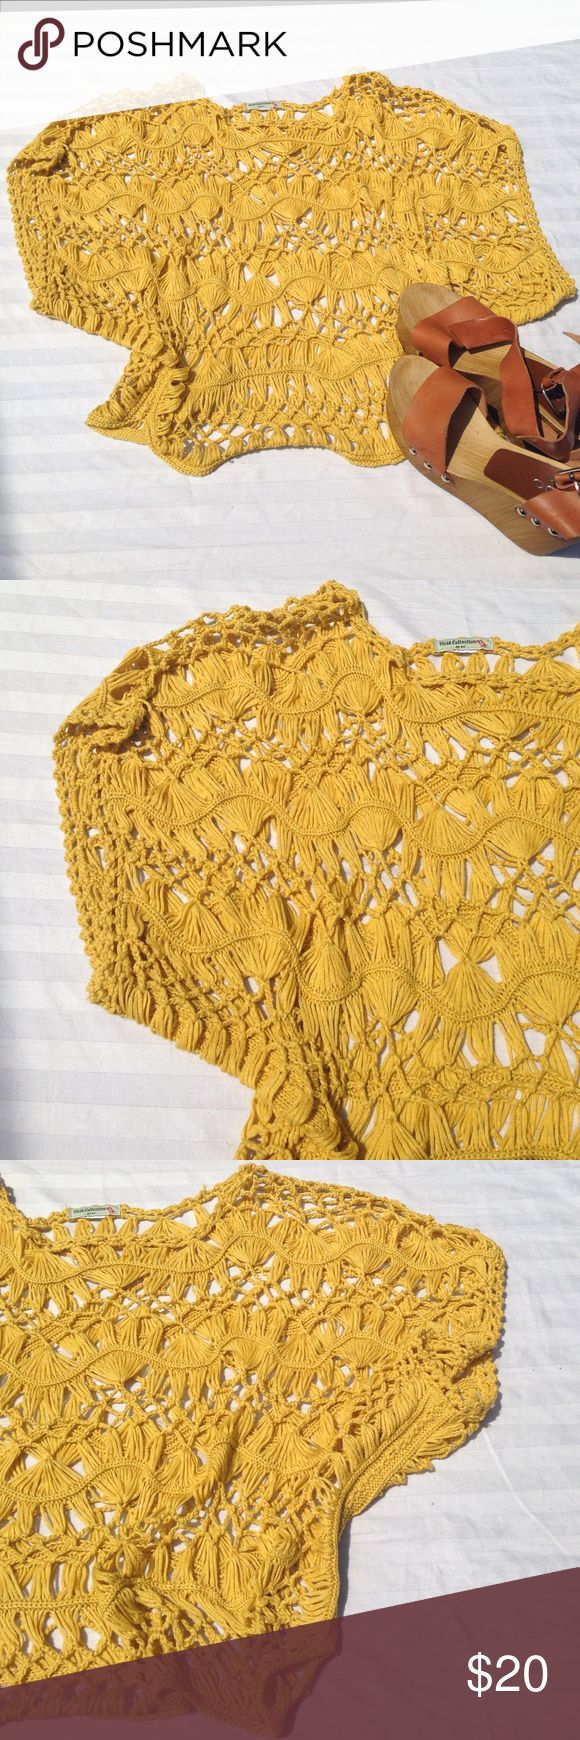 VIVID COLLECTIONS crochet top Light, see through, crochet top. Bohemian feel. Great mustard yellow color. Length - appx 21.  Thank you for visiting my closet. :) Please let me know if you have any questions. Vivid Collections Tops